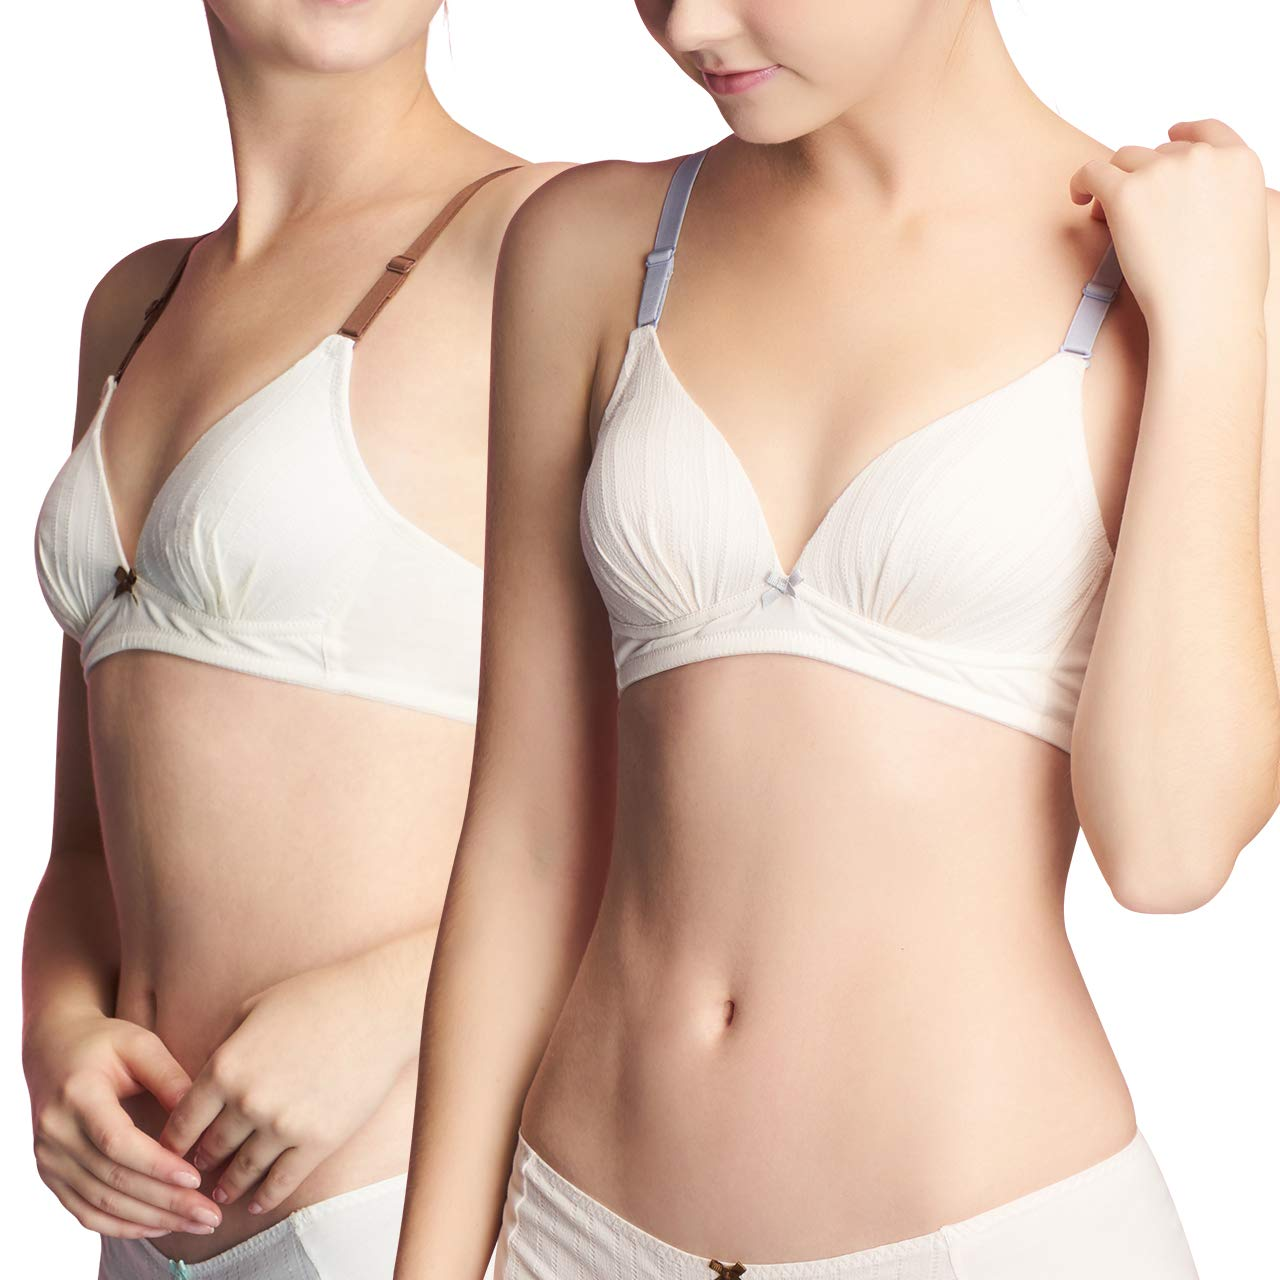 SANQIANG 2 Pack Big Girls Wireless Cotton Bra Women Softi Cup Lightly Lined Bralette B31883N